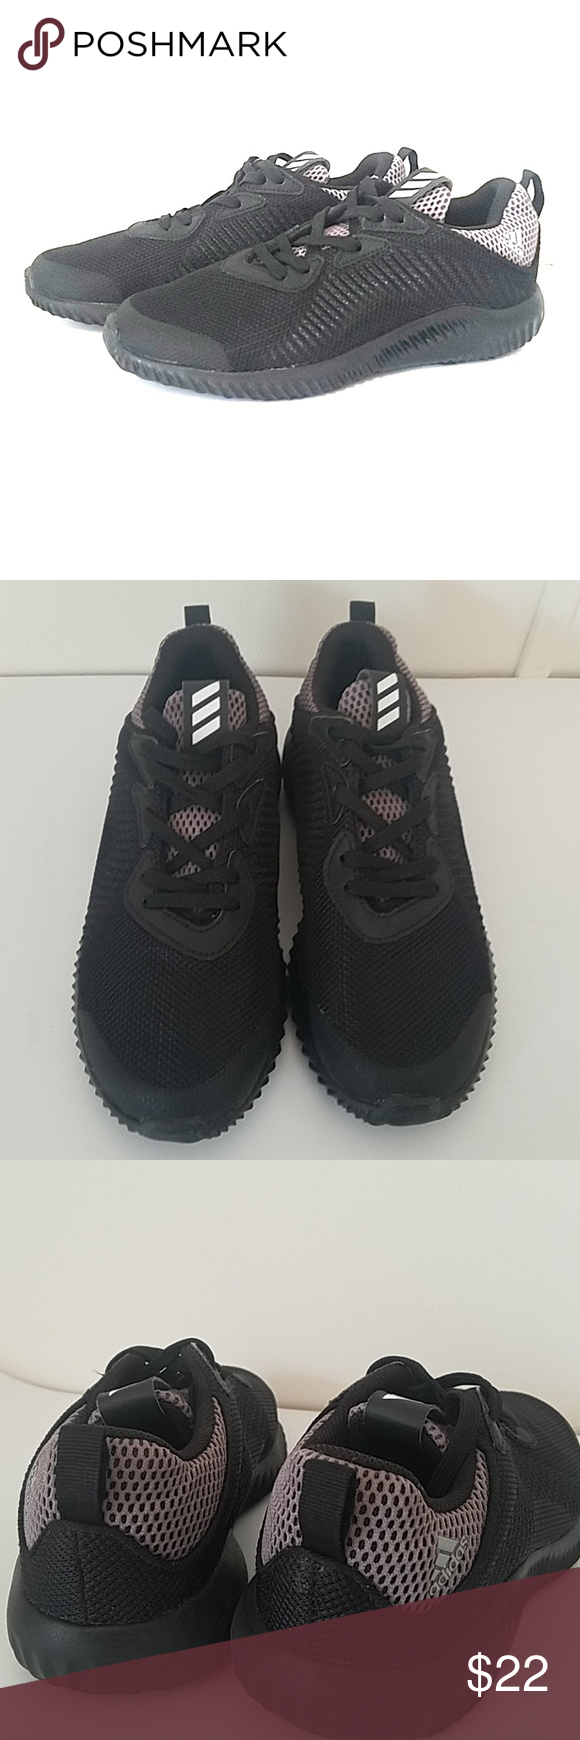 e27847e2a7a Boys Eco Ortholite Adidas These black shoes are in excellent ...